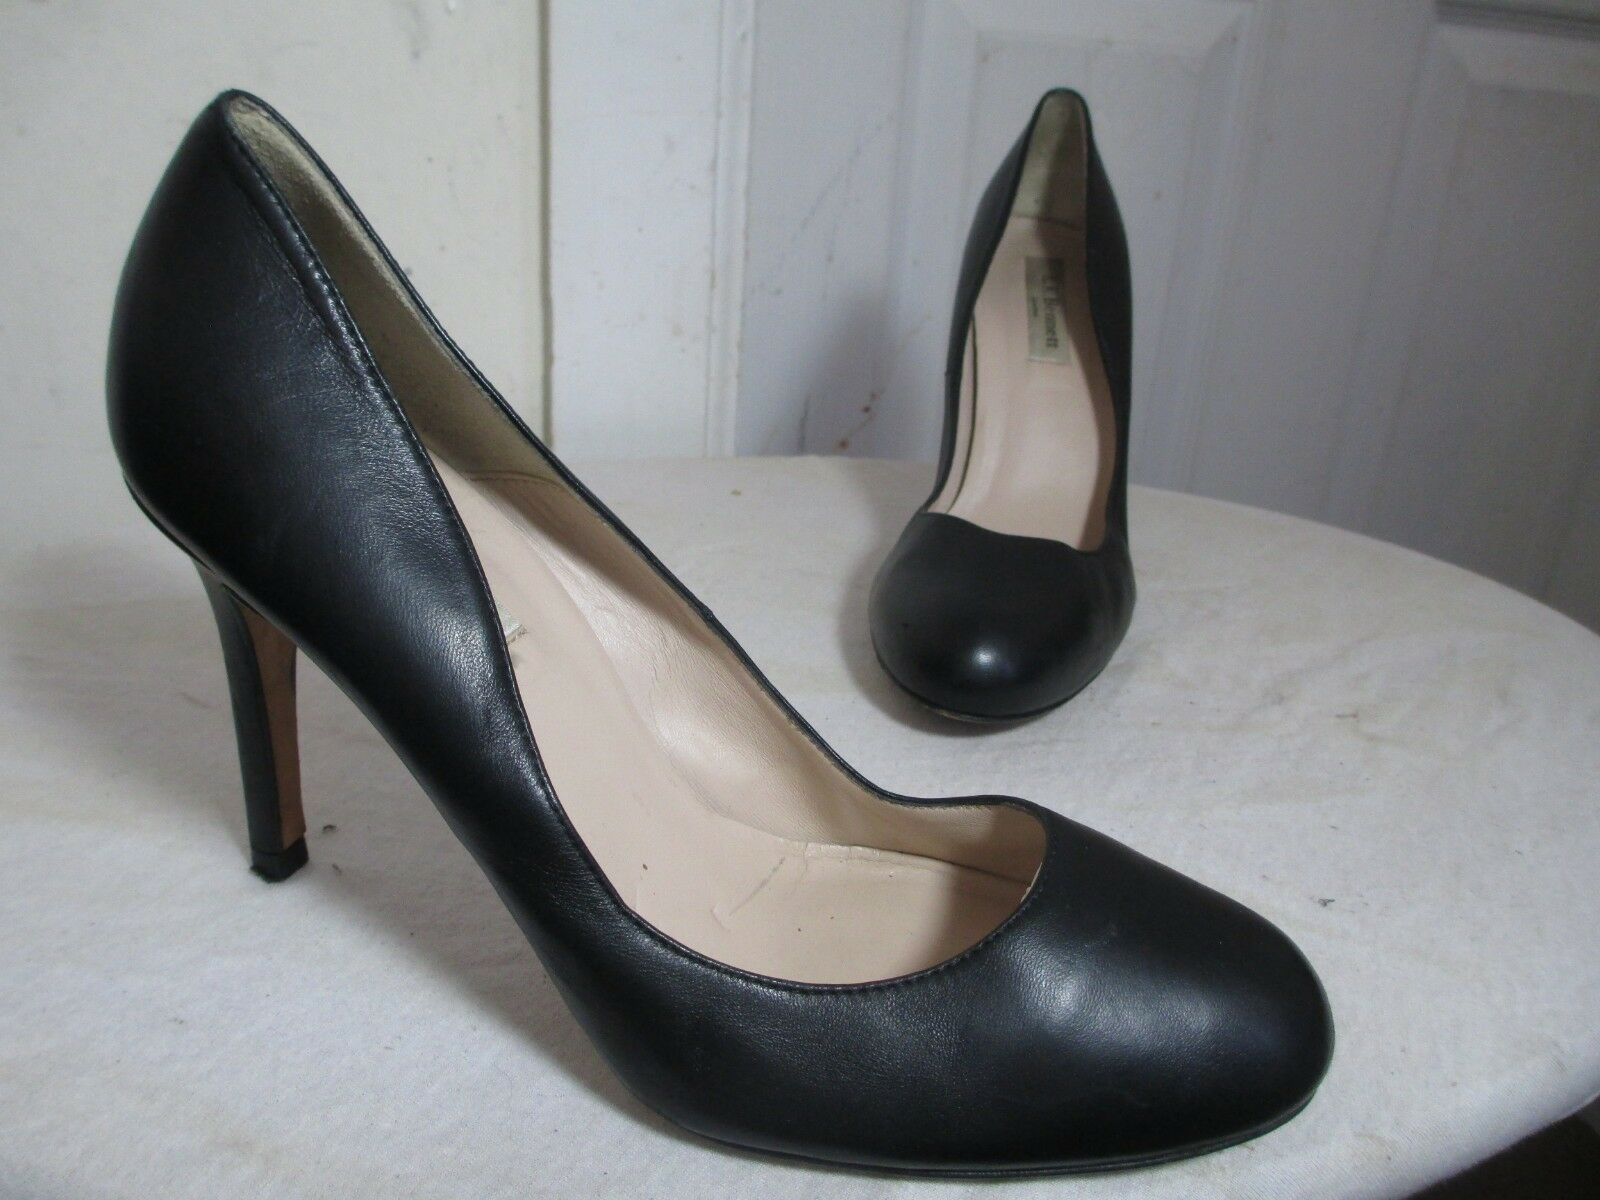 LK BENNETT donna'S nero LEATHER PUMPS HEELS MADE IN SPAIN Dimensione EU 39 US 8.5